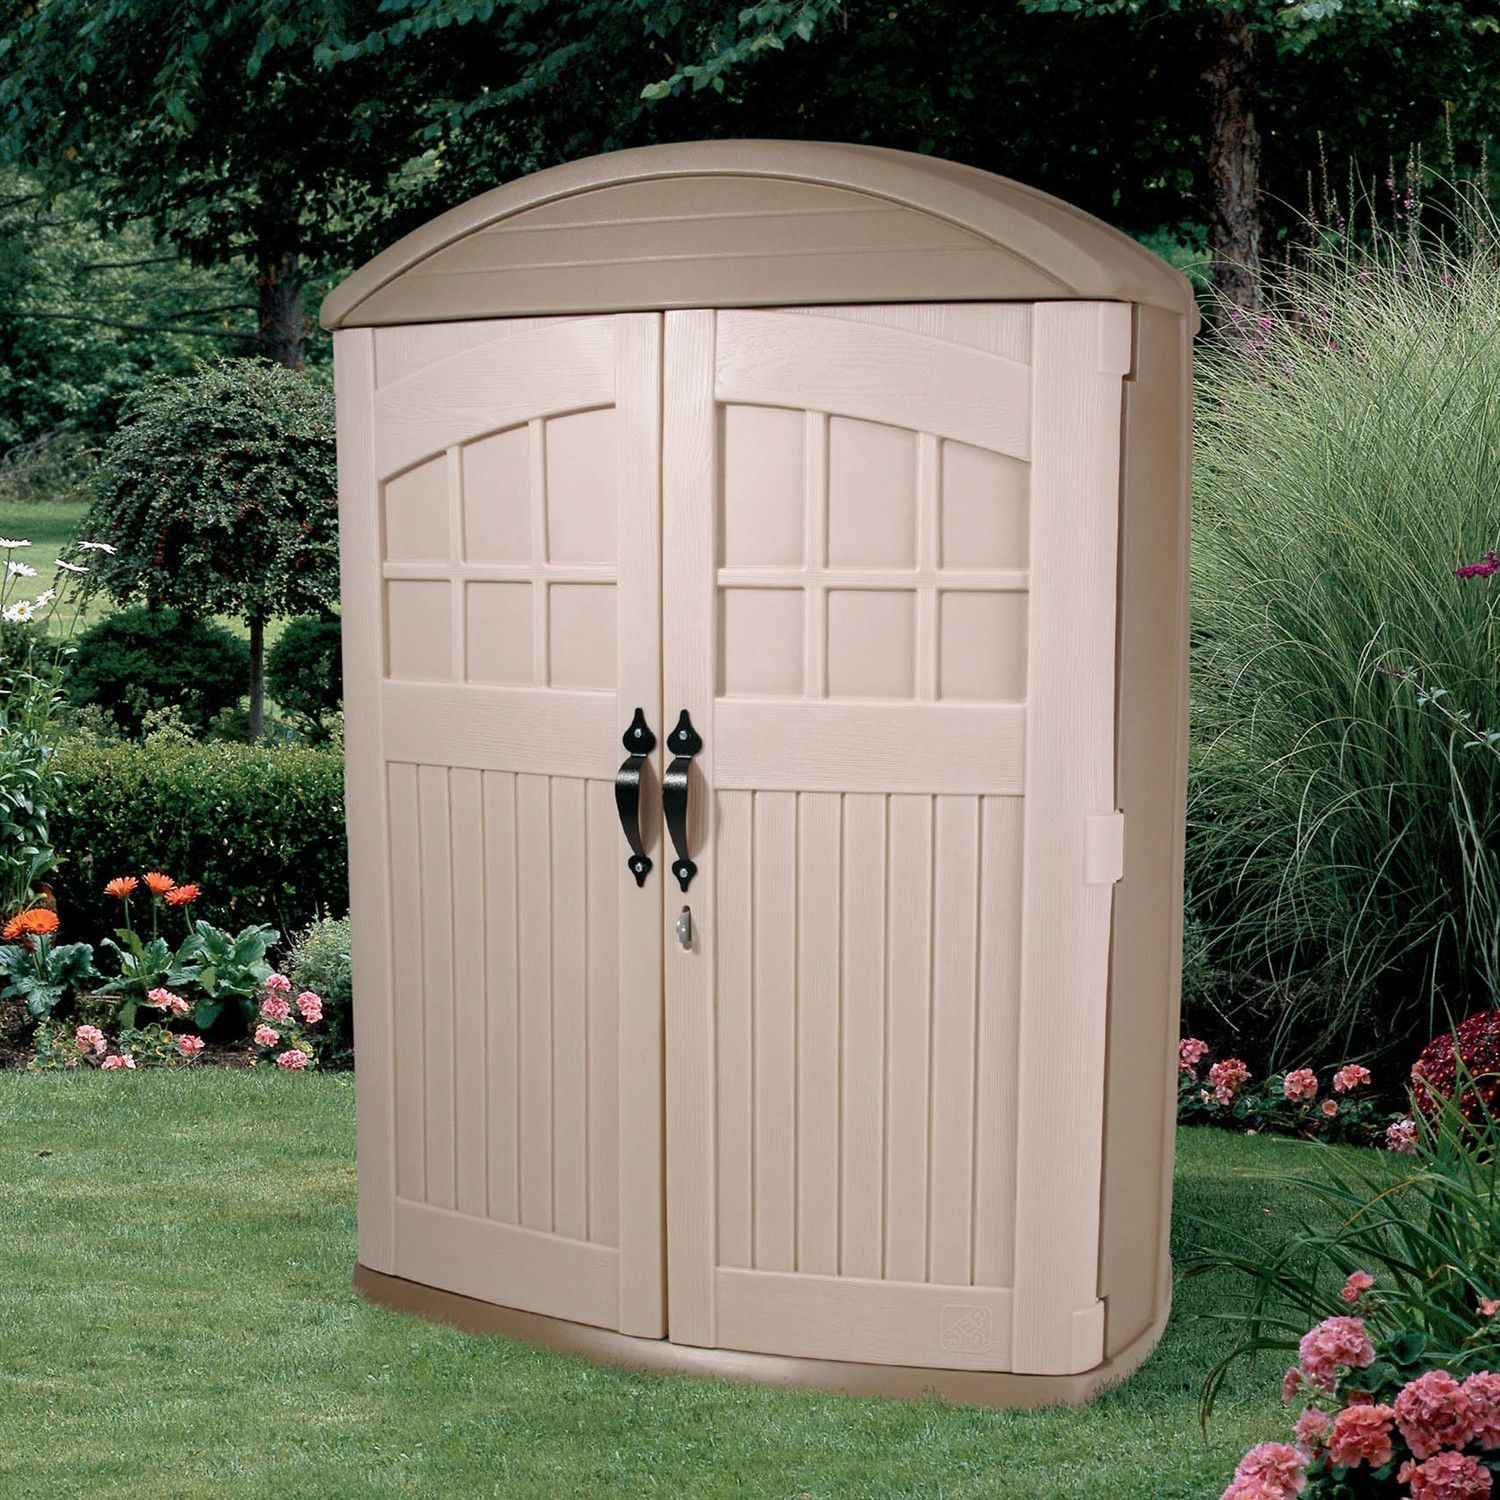 tall boy outdoor plastic lawn garden tool shed 4ft x 2ft x 6ft high